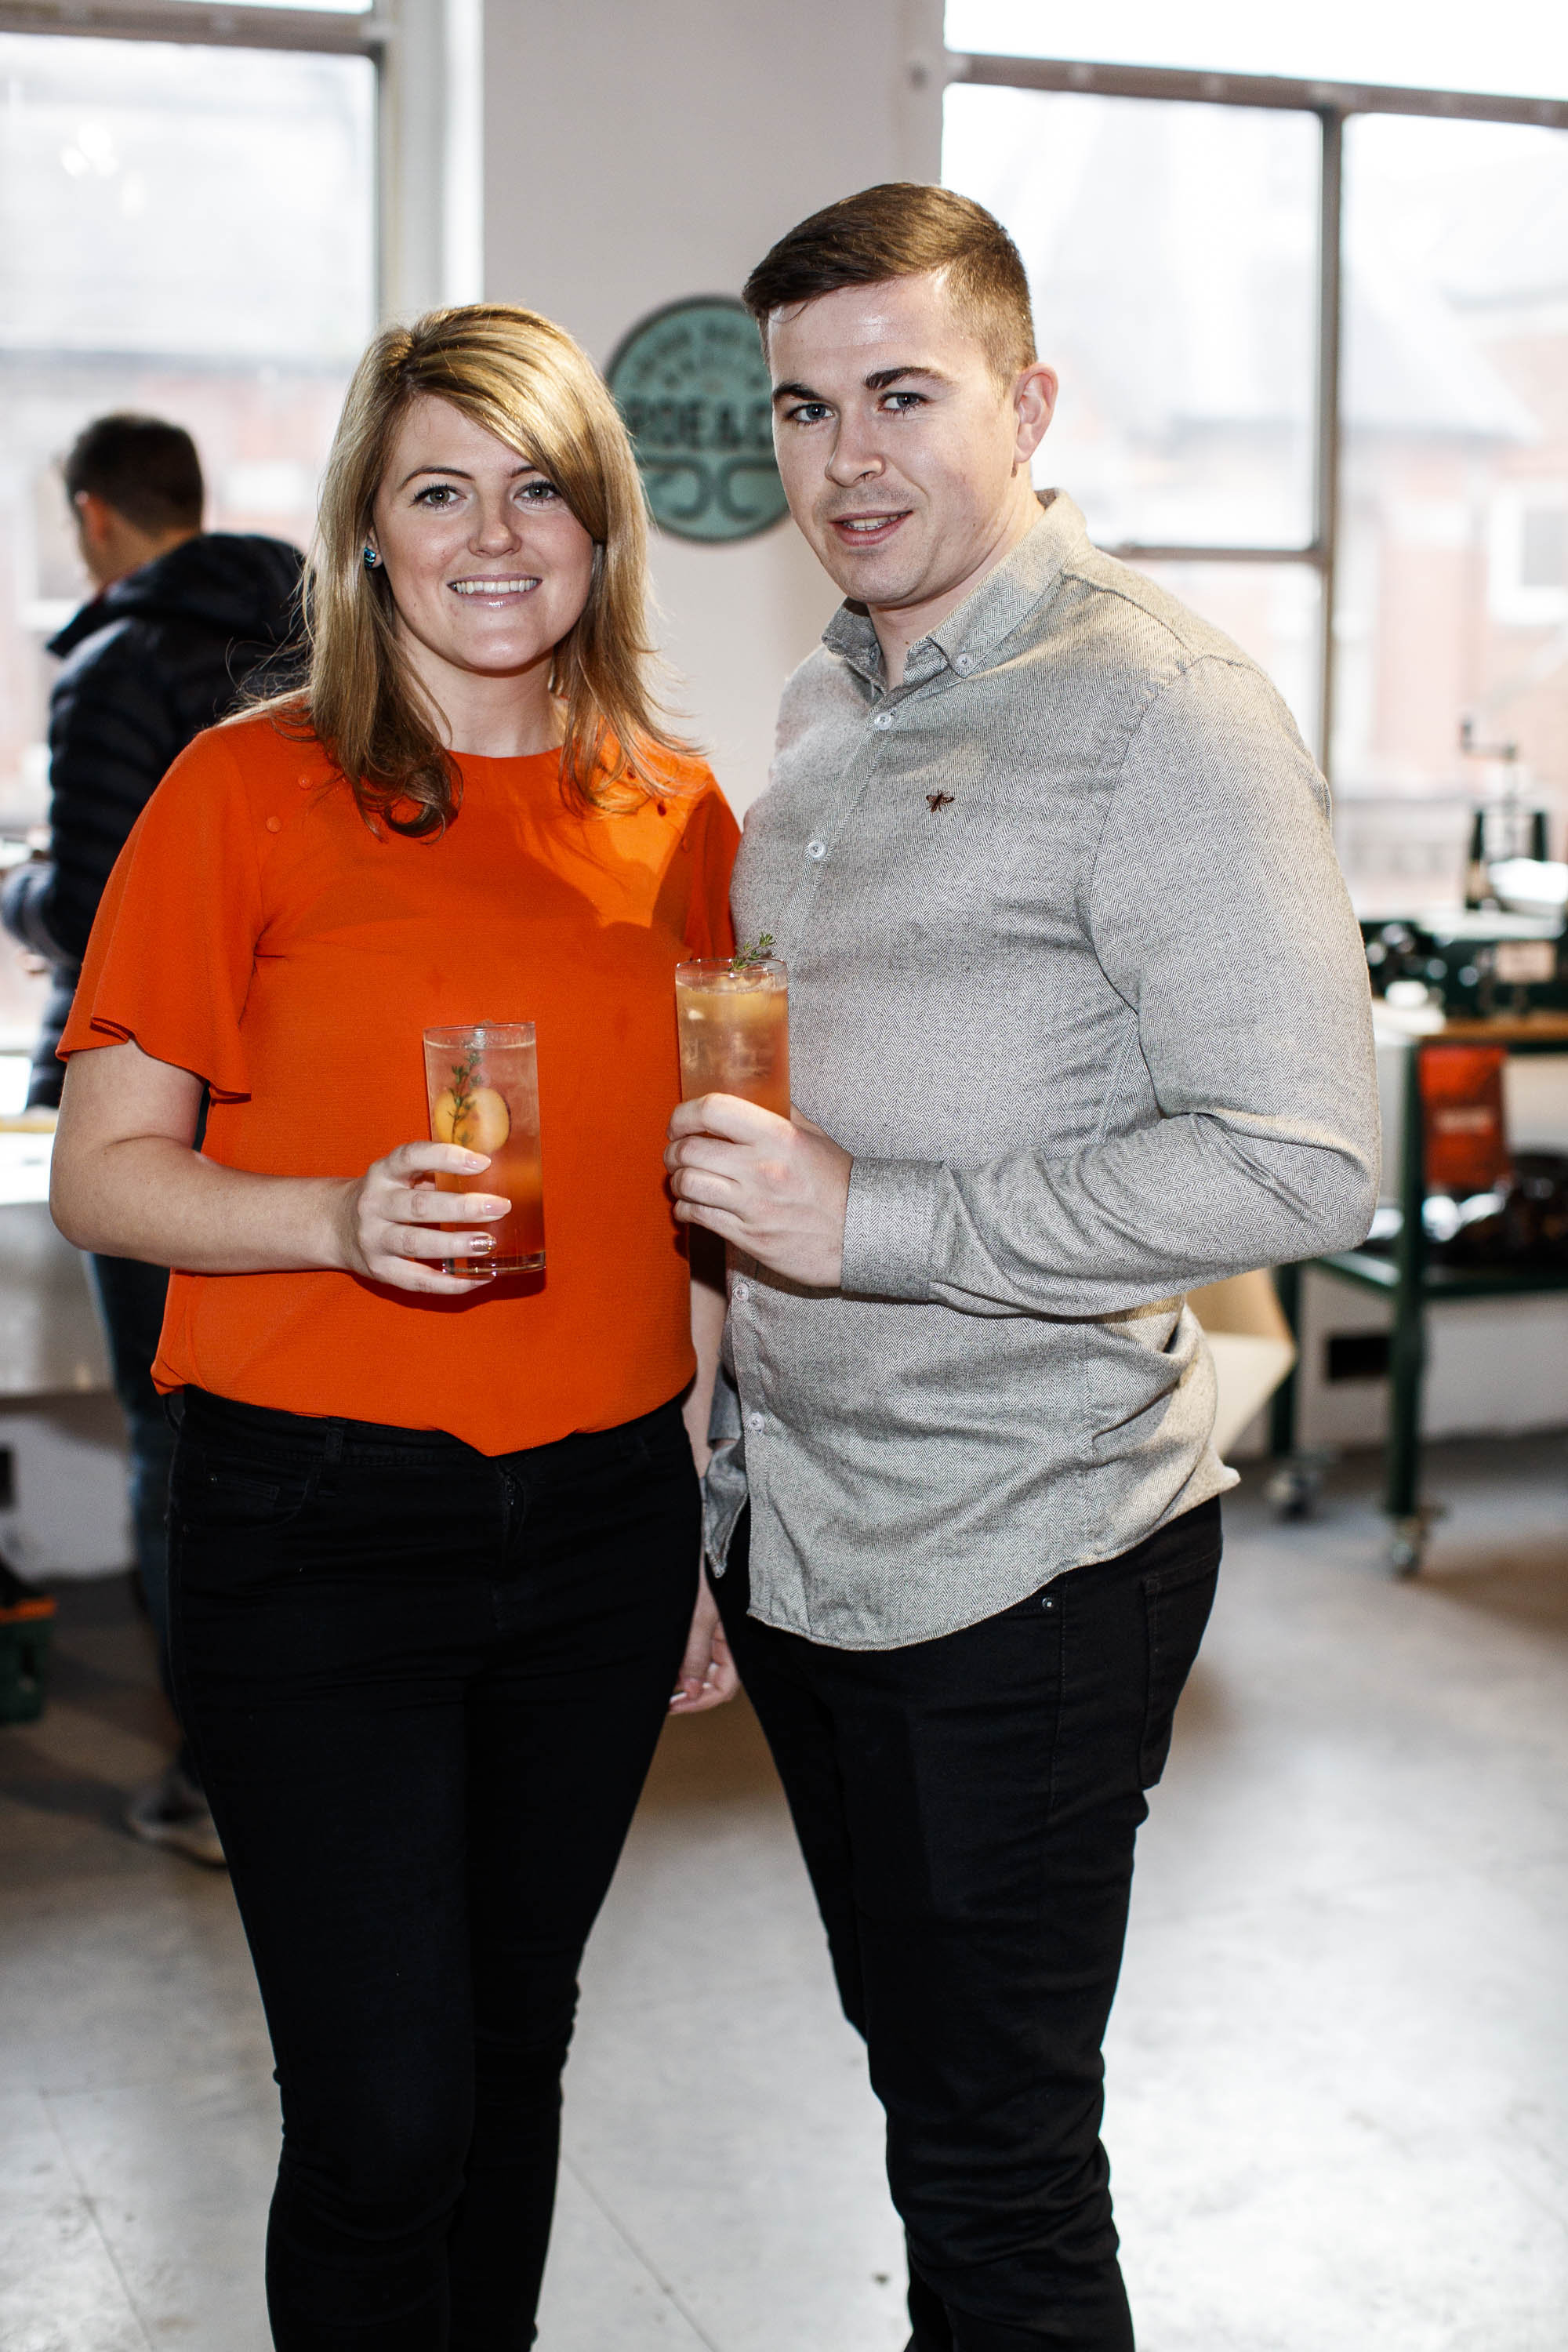 Niamh Baker and Diarmuid Tobin pictured at The Roe and Collective launch, Dollard Printing House.   Roe & Co, a brand that lives and breathes creative reinvention, will bring some of Ireland's most impressive artists and creatives together to celebrate craft in the heart of Dublin city. A yet unused space within the newly revived Dollard Printing House on Dublin's Quays has been transformed into a Roe & Co venue, where the premium Irish whiskey will host workshop sessions, The Roe & Collective. The workshops will take place just a stone's throw from the new Roe & Co distillery on James's Street which is due to open its doors in Spring 2019.  Guests enjoyed a cocktail masterclass with Roe & Co ambassador, Alan Mulvihill, the art of the portrait with wet plate photographer, Alex Sapienza and a copper etching live demo with artist, Helen O'Higgins. Check out Eventbrite.ie for details of the next Roe & Collective event on Saturday, 8th December 2018. Picture Andres Poveda